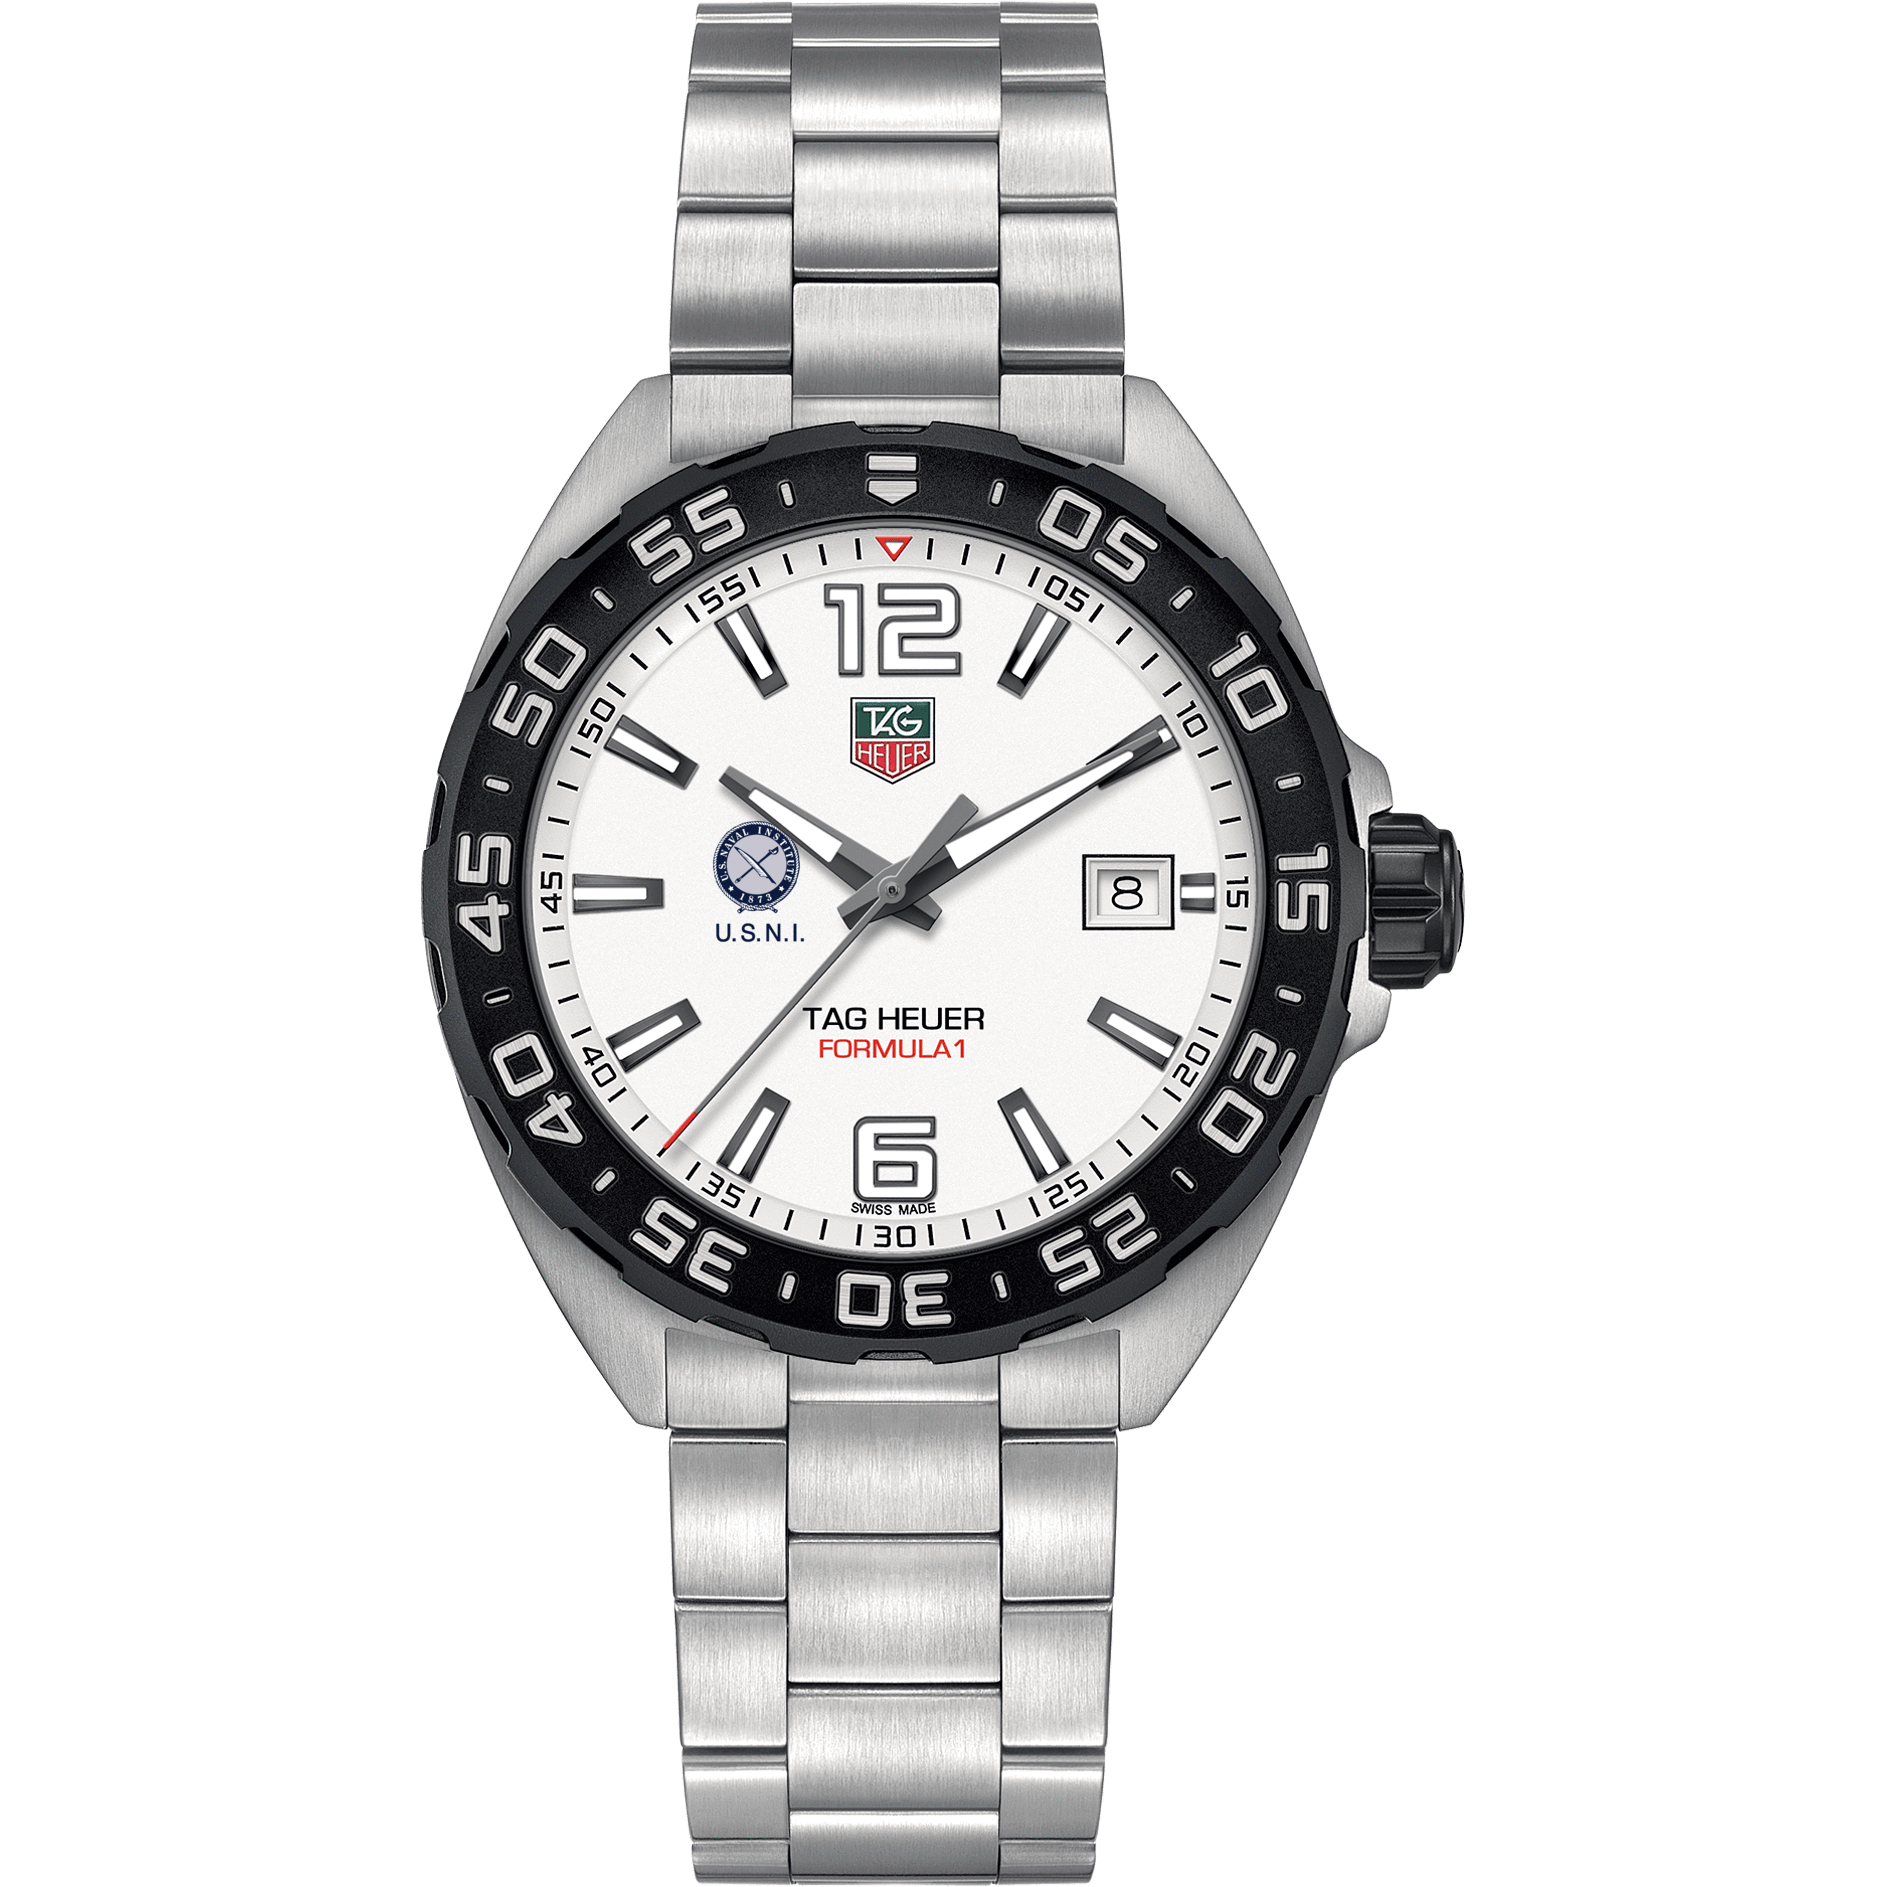 US Naval Institute Men's TAG Heuer Formula 1 - Image 2